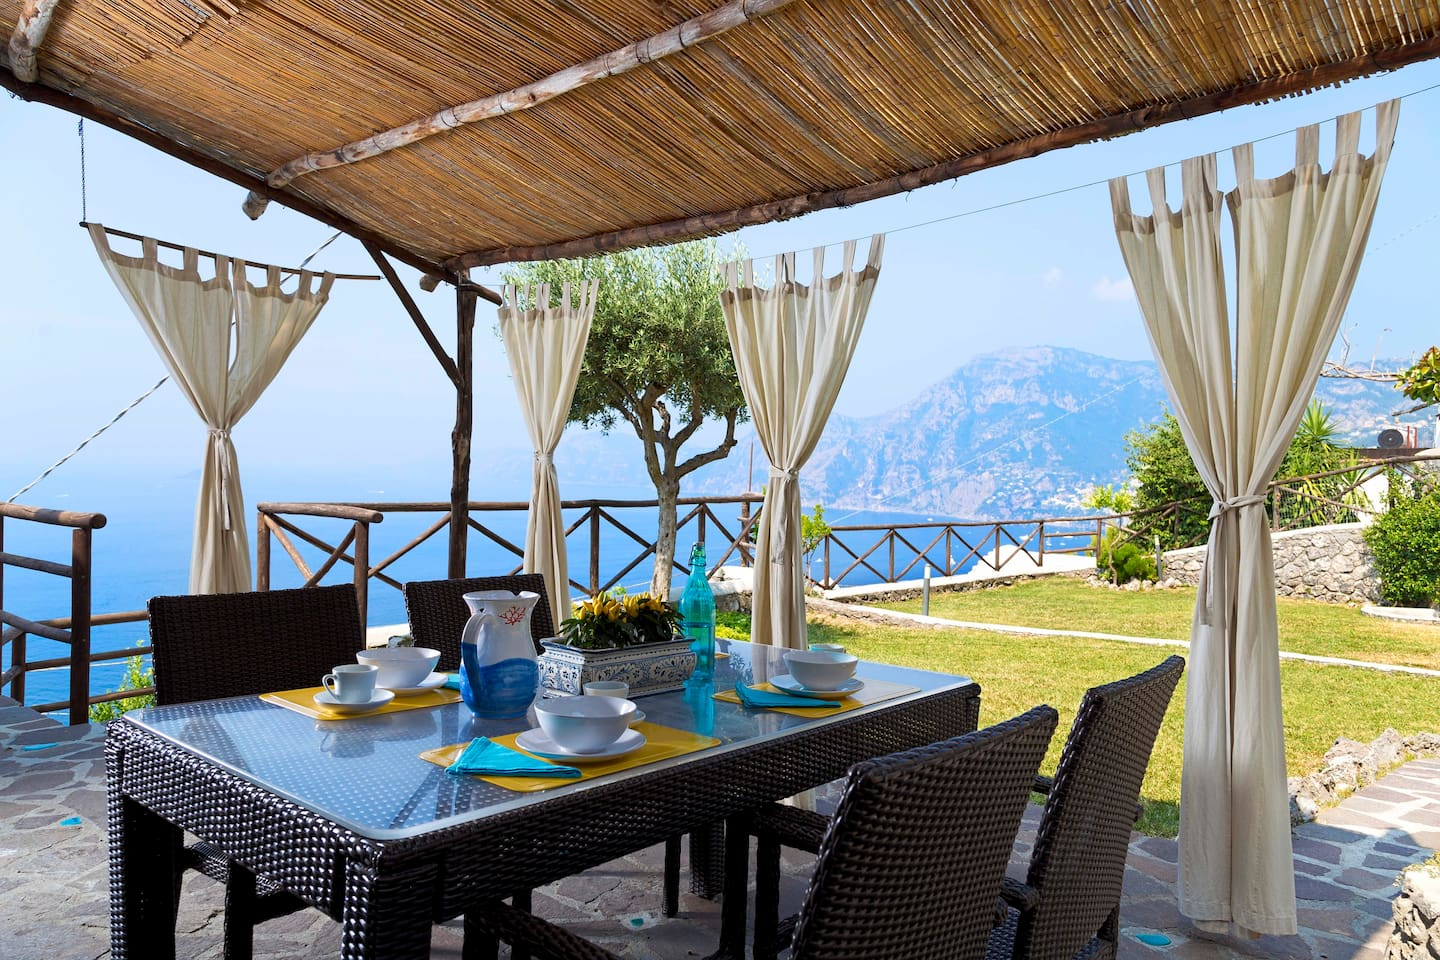 Have a breakfast looking at Capri and Positano from the patio